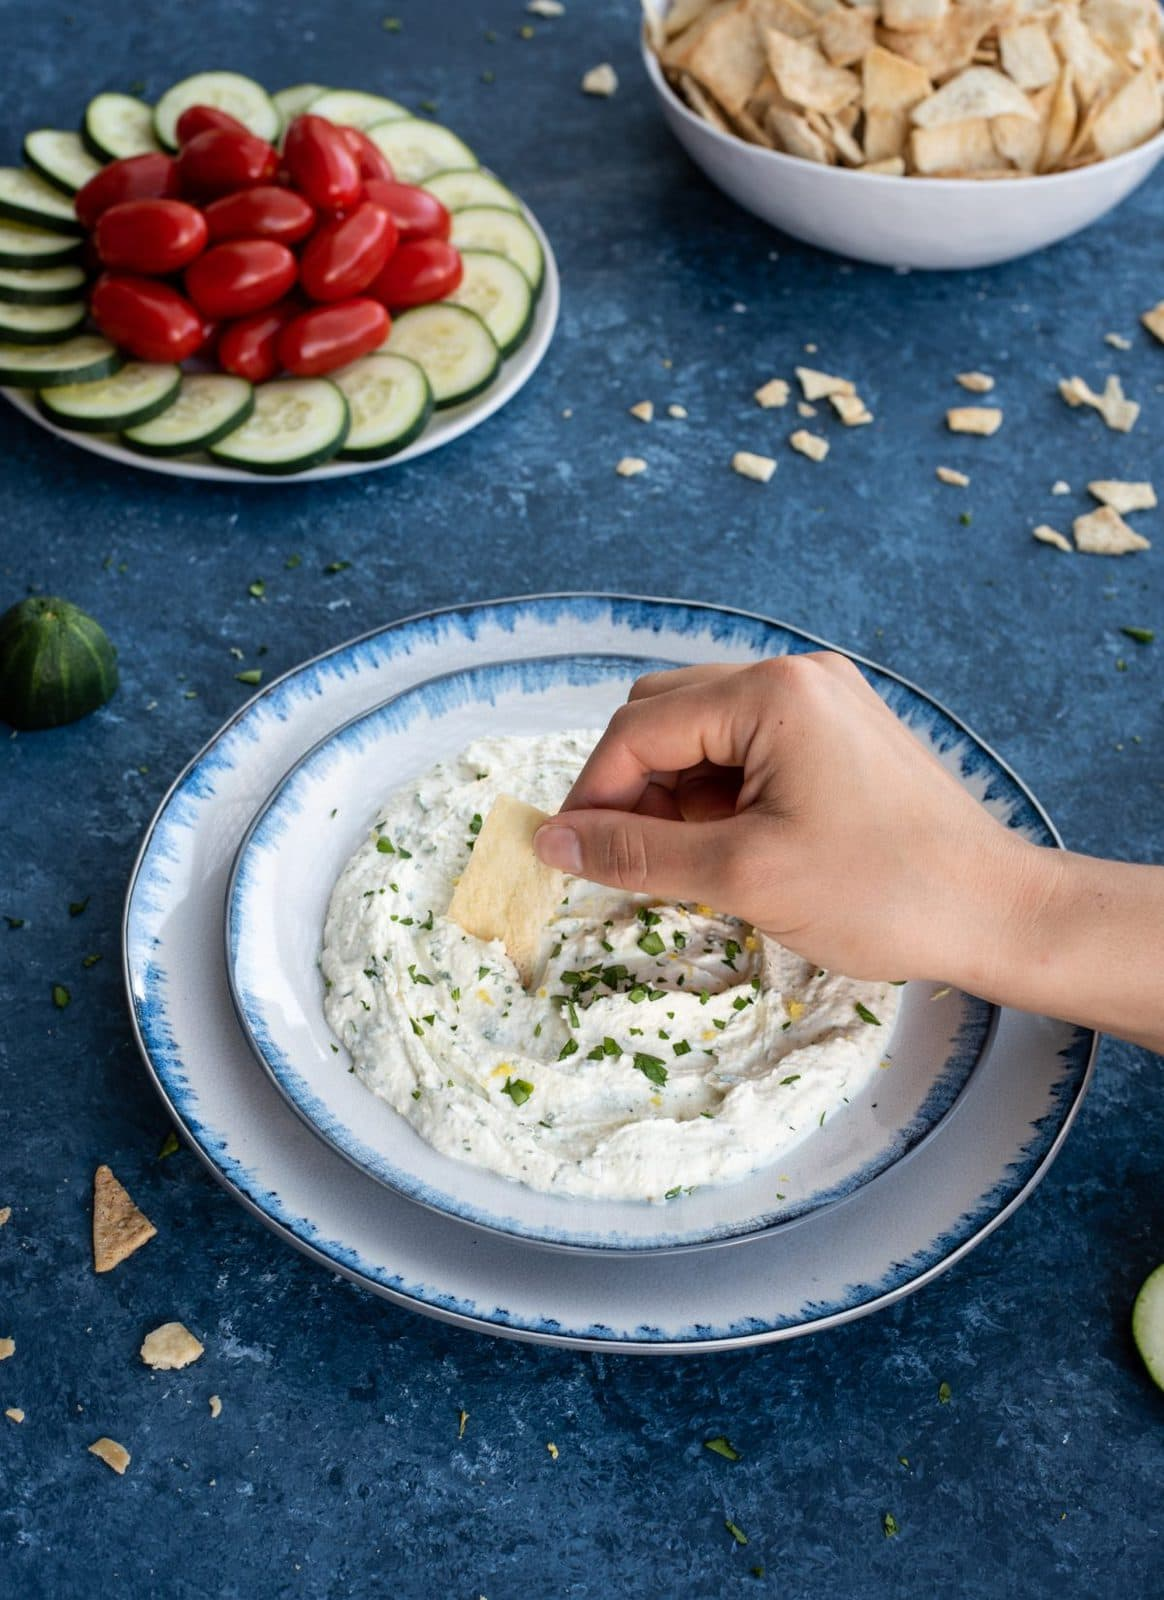 Hand with chip scooping whipped feta with herbs